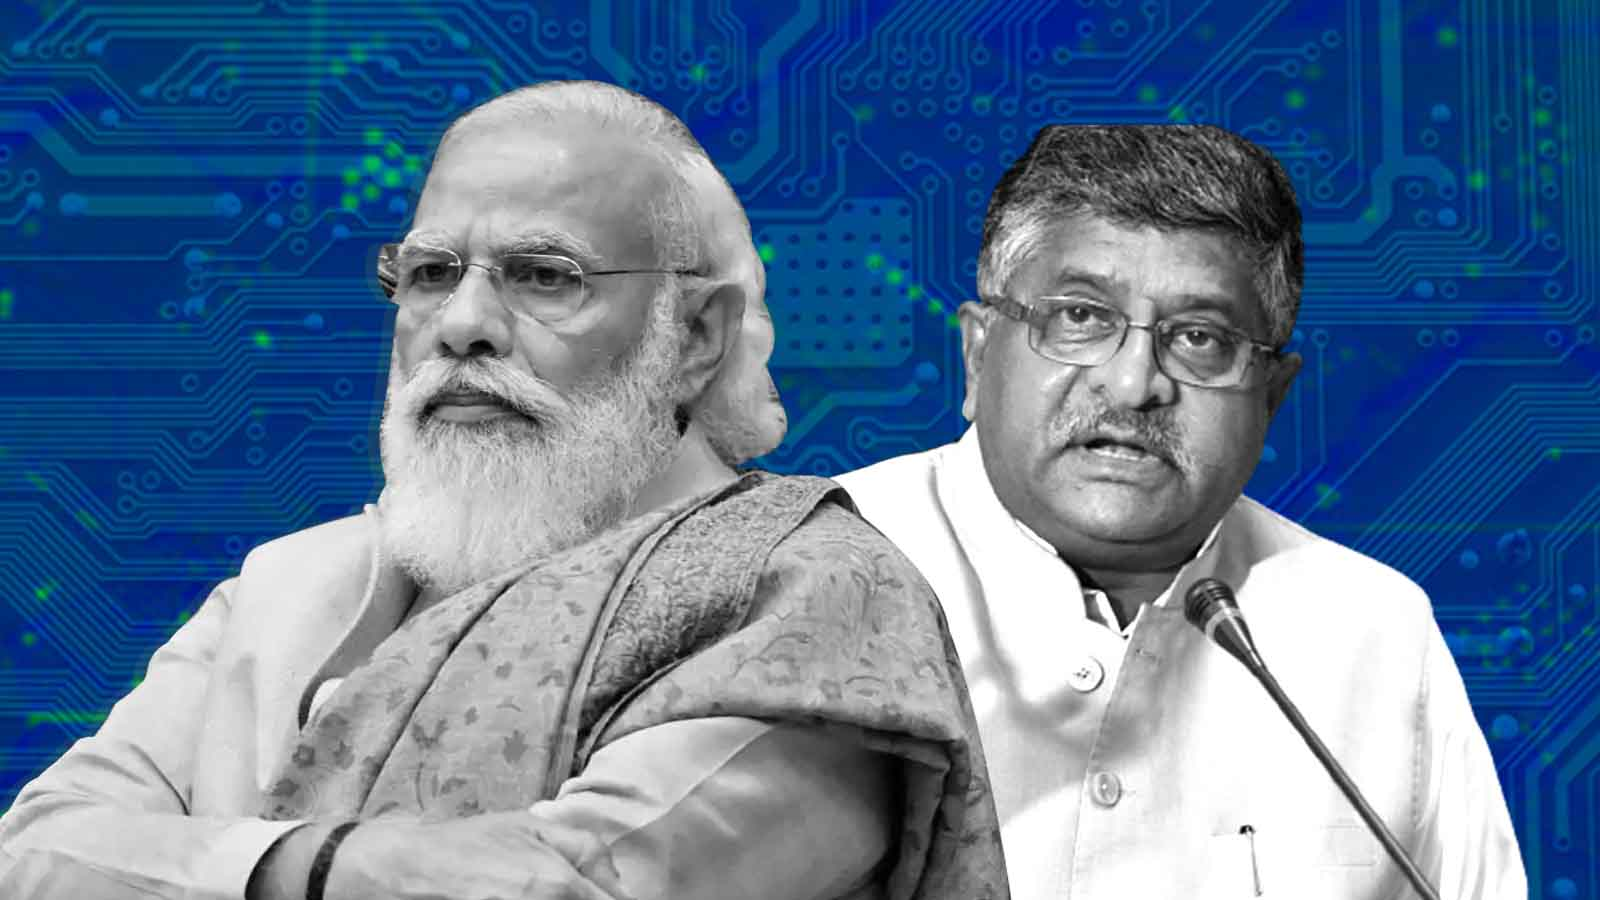 Semiconductor to be built in India - Government of India engaged in trying to woo chip maker companies